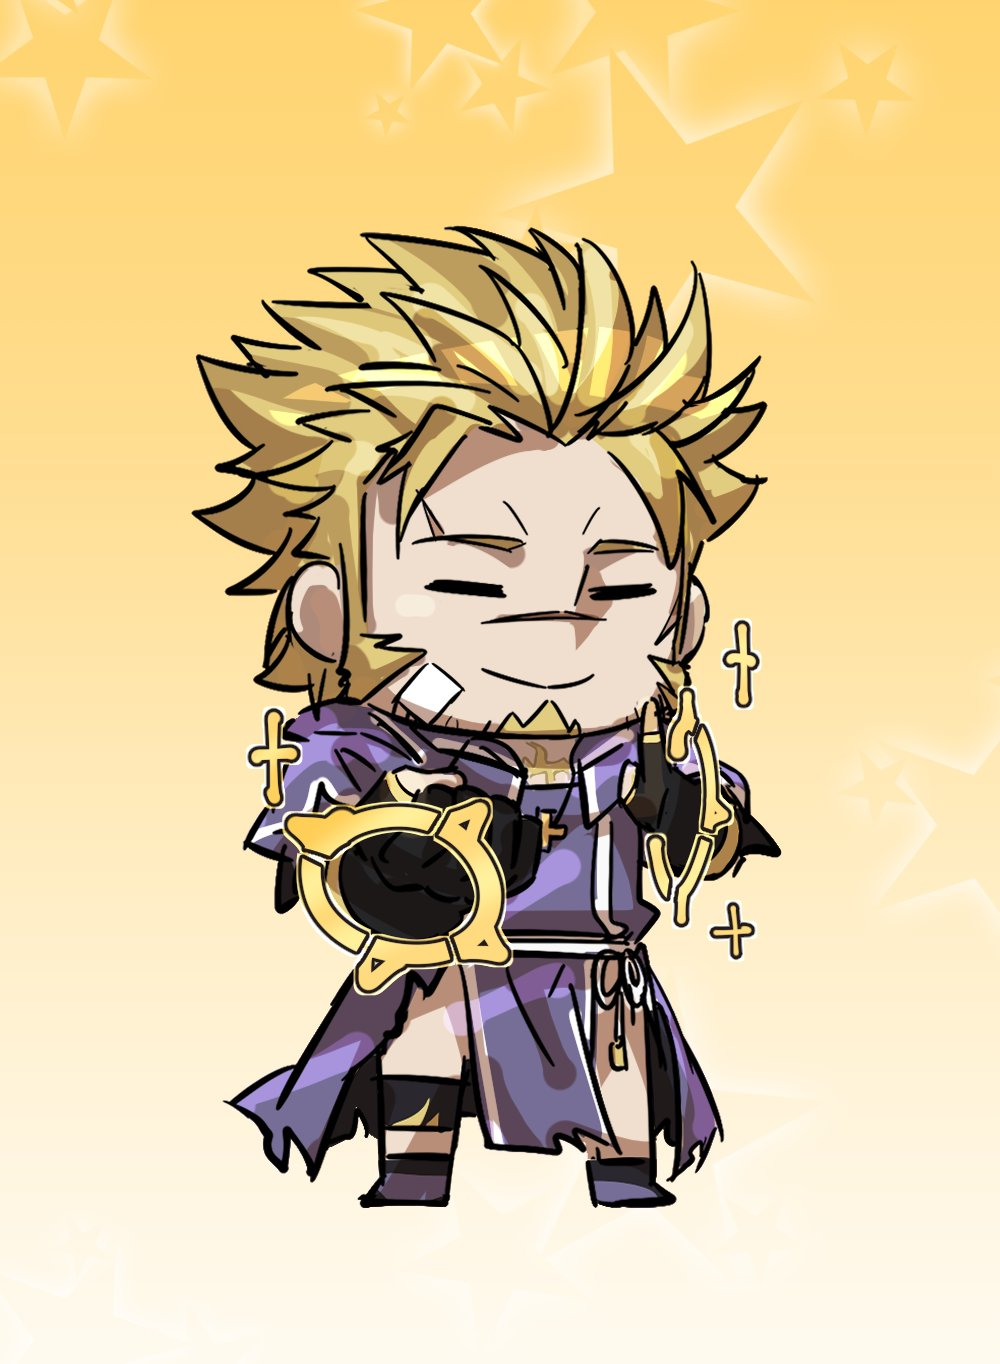 1boy blonde_hair chibi closed_eyes facial_hair fate/grand_order fate_(series) fingerless_gloves full_body gloves goatee gradient gradient_background highres ina_zuma jacob_(tokyo_houkago_summoners) male_focus pelvic_curtain priest riyo_(lyomsnpmp)_(style) short_hair sideburns simple_background solo stubble tokyo_houkago_summoners torn_clothes